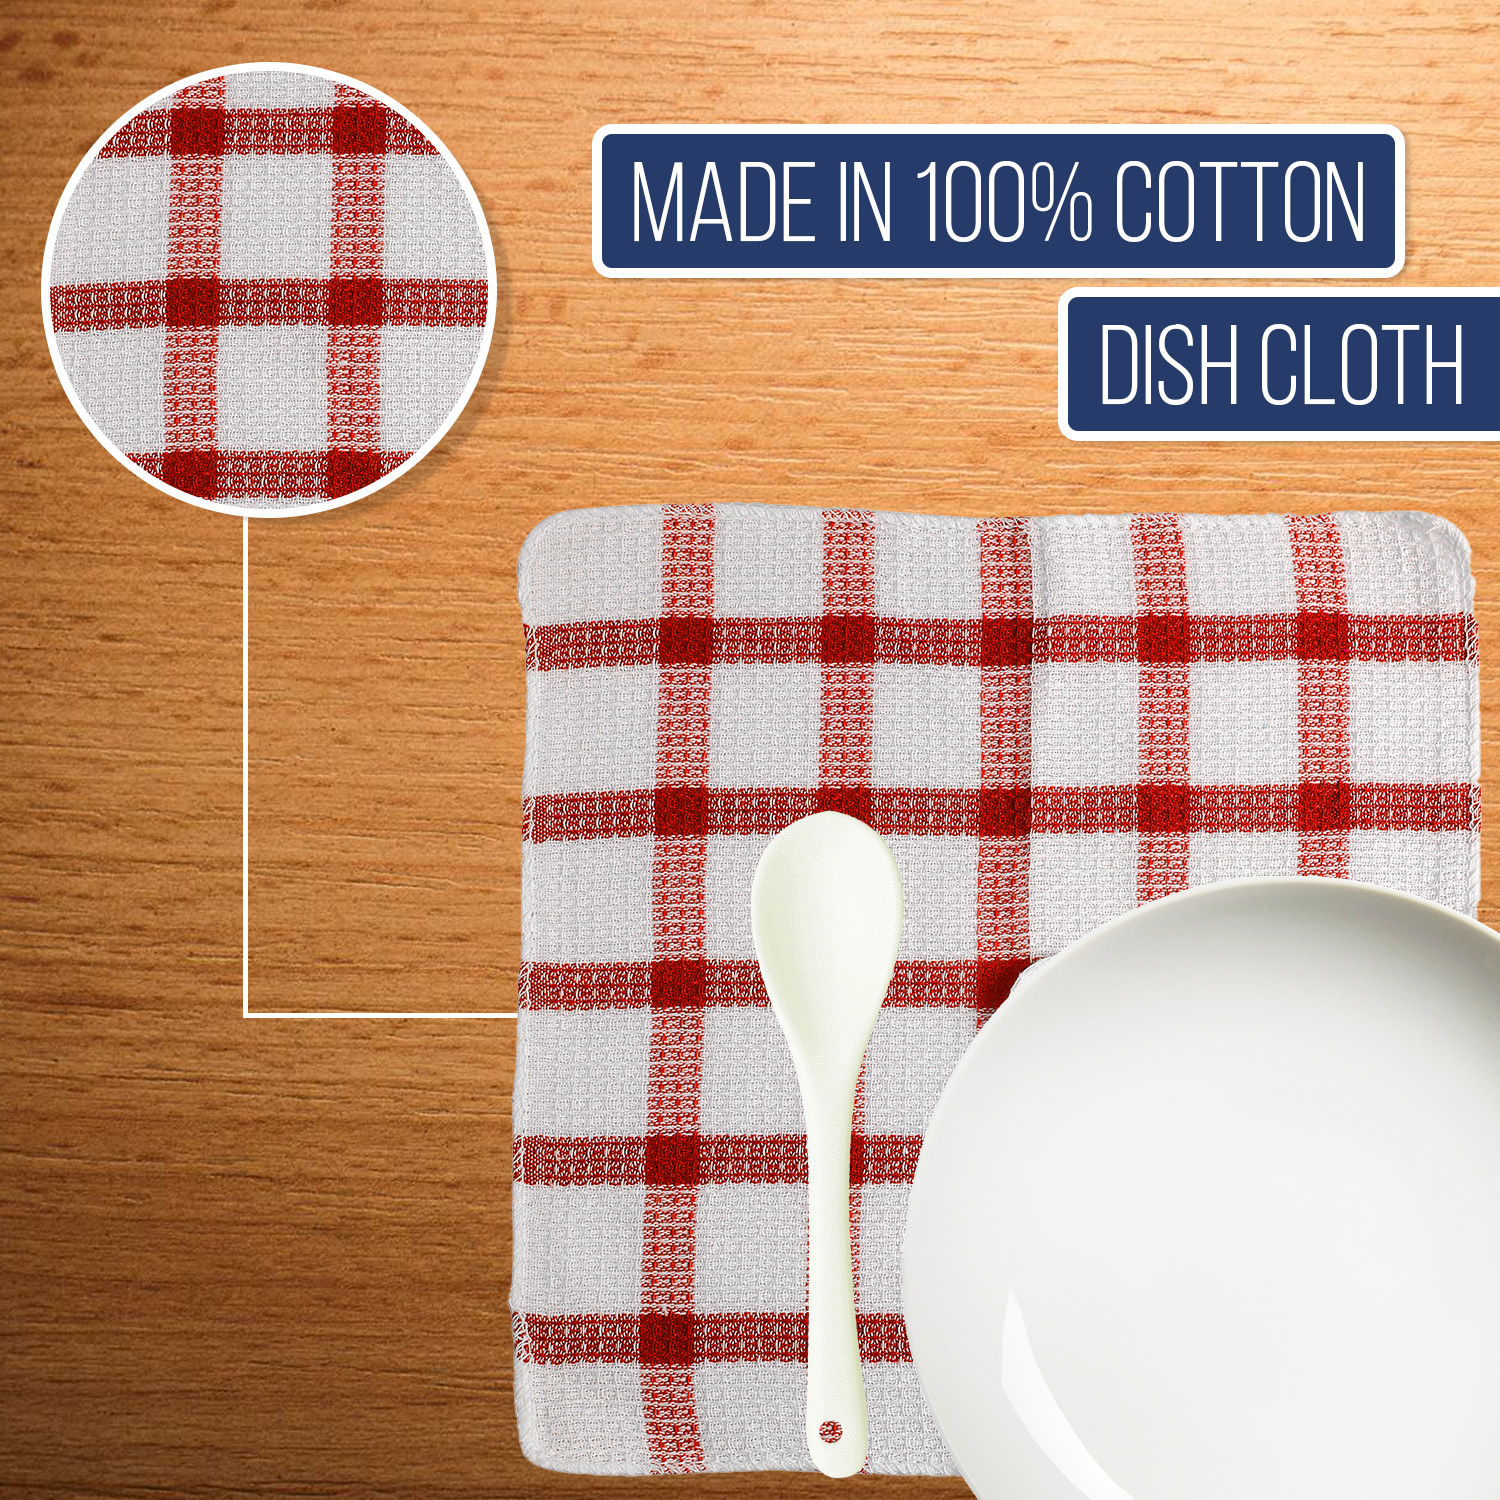 Set-of-24-Checkered-100-Cotton-Dish-Cloth-Kitchen-Cleaning-Cloth thumbnail 14